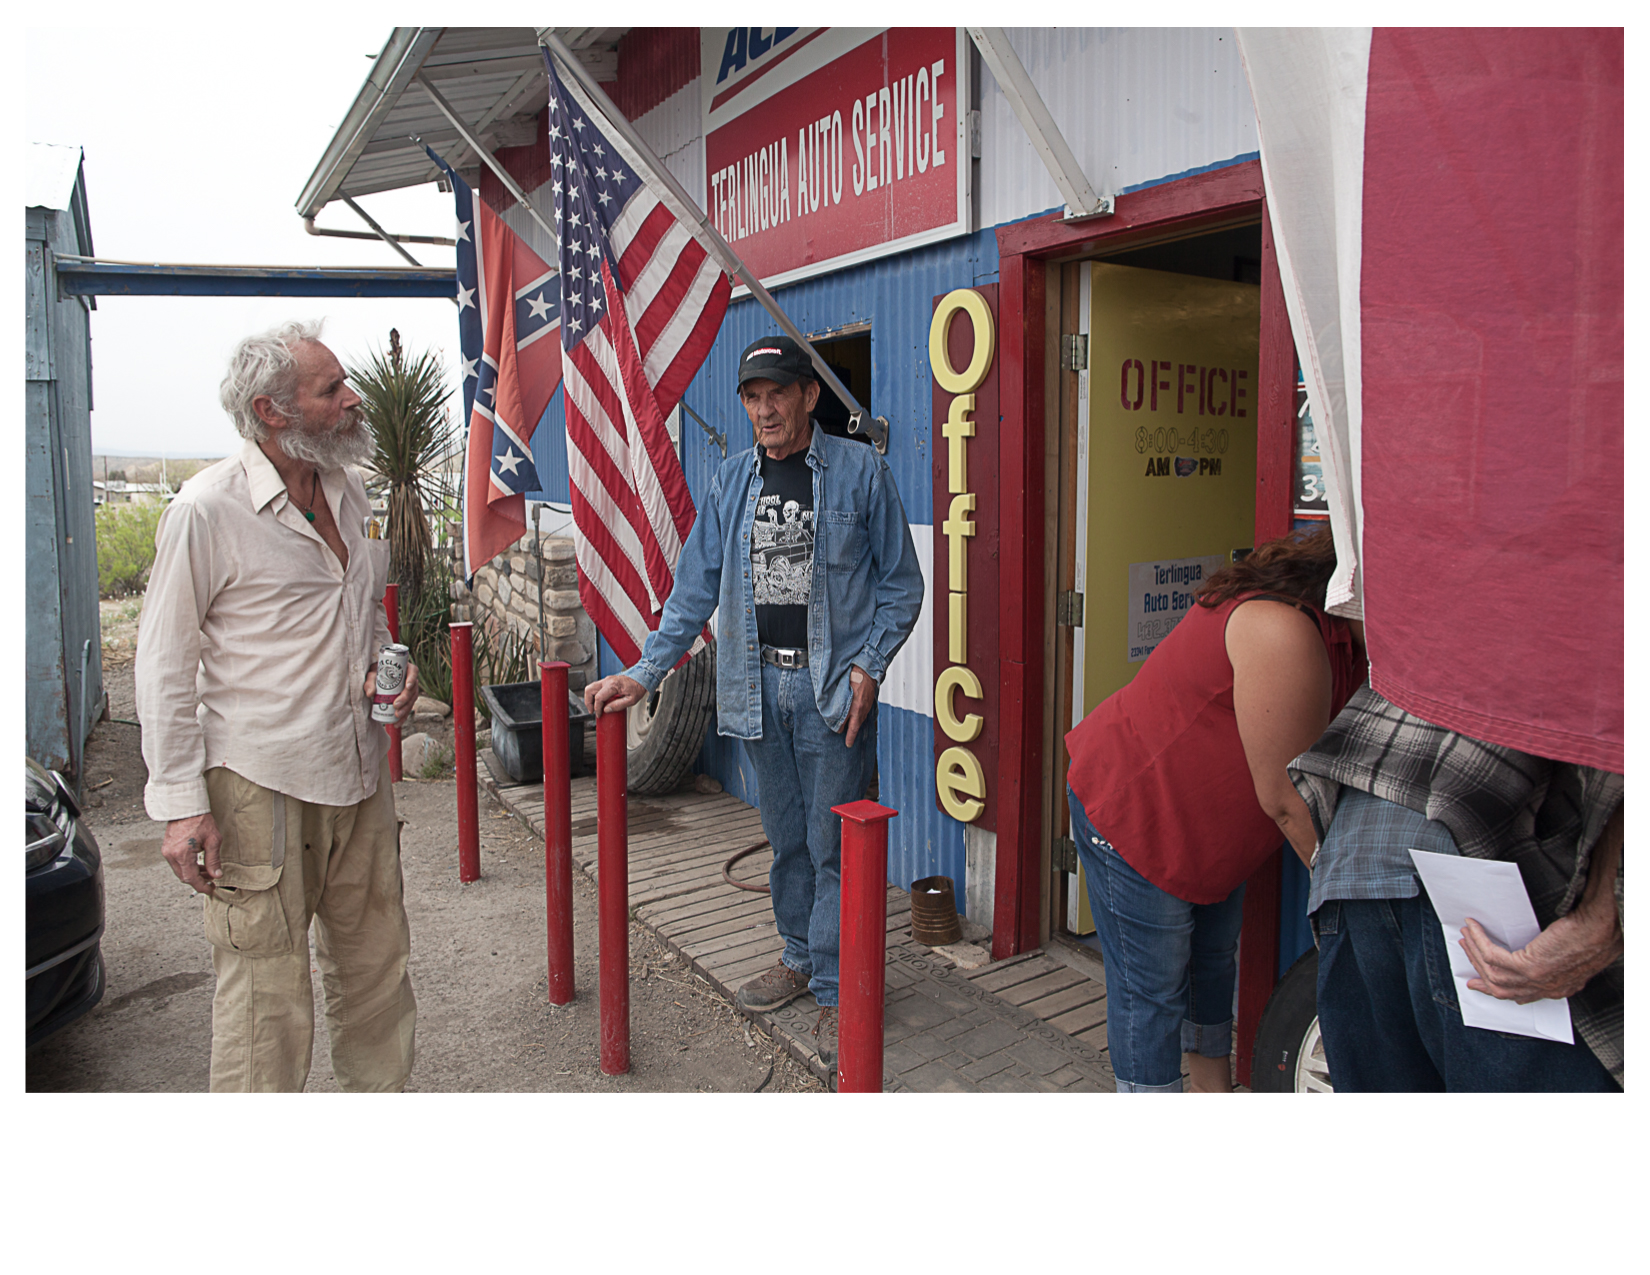 Outside Terlingua Tire Service, Terlingua, TX